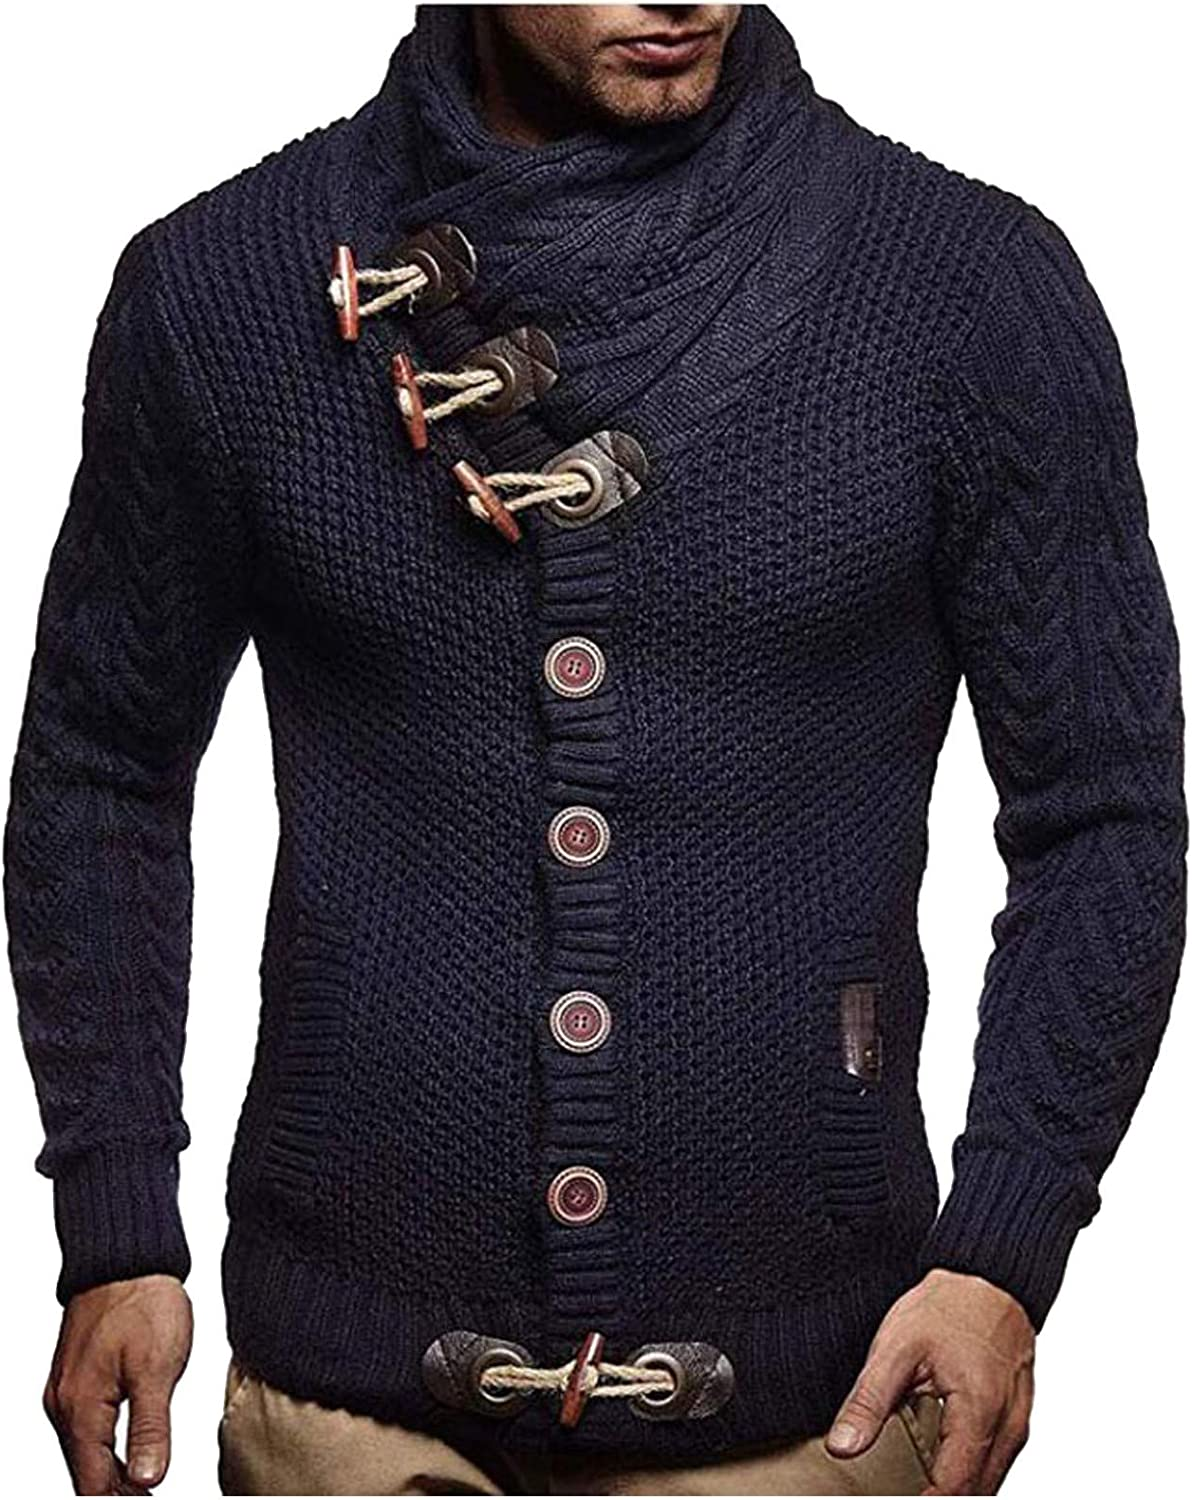 HONGJ Knitted Sweaters for Mens, Fall Winter Cowl Neck Pullover Horn Button Turtleneck Cardigan Casual Warm Jumper